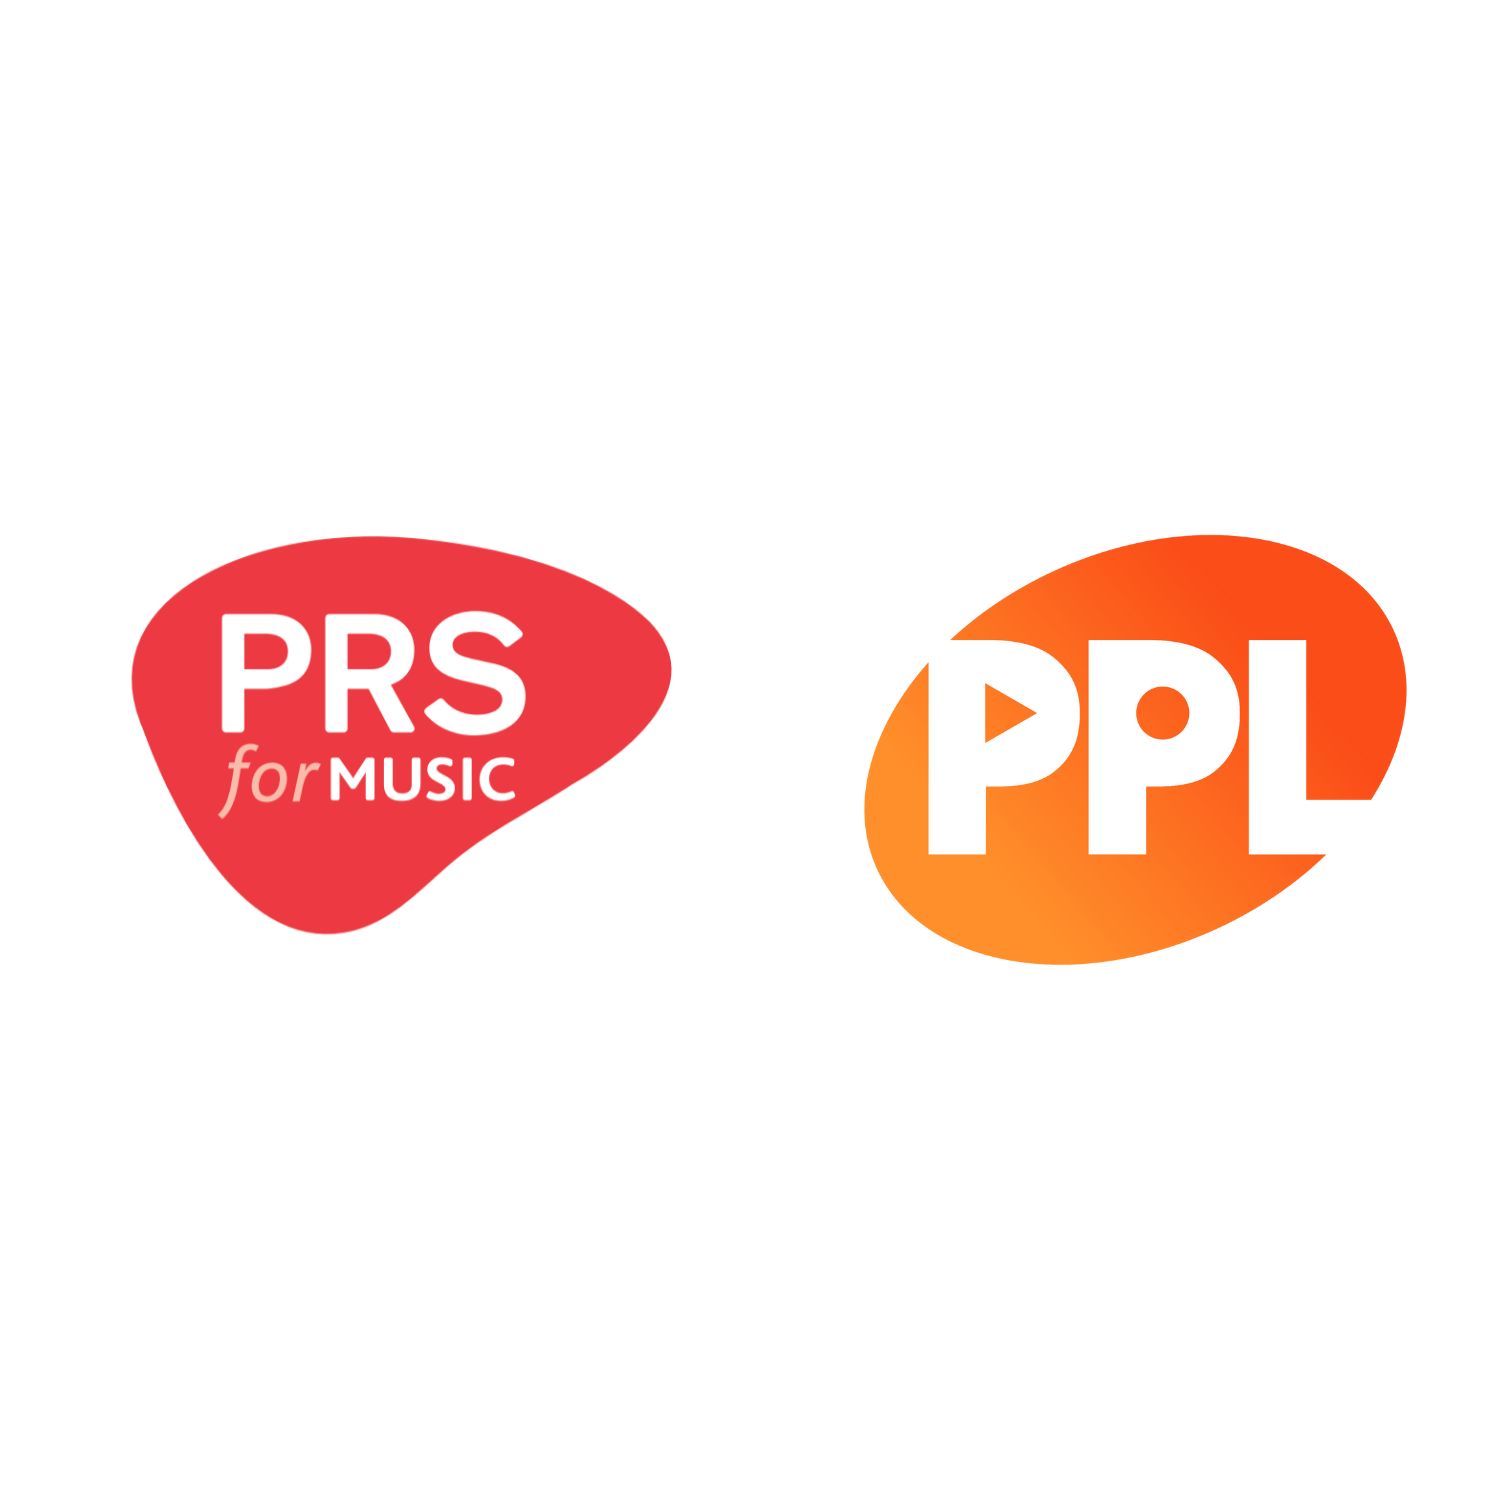 Meet PRS for Music and PPL